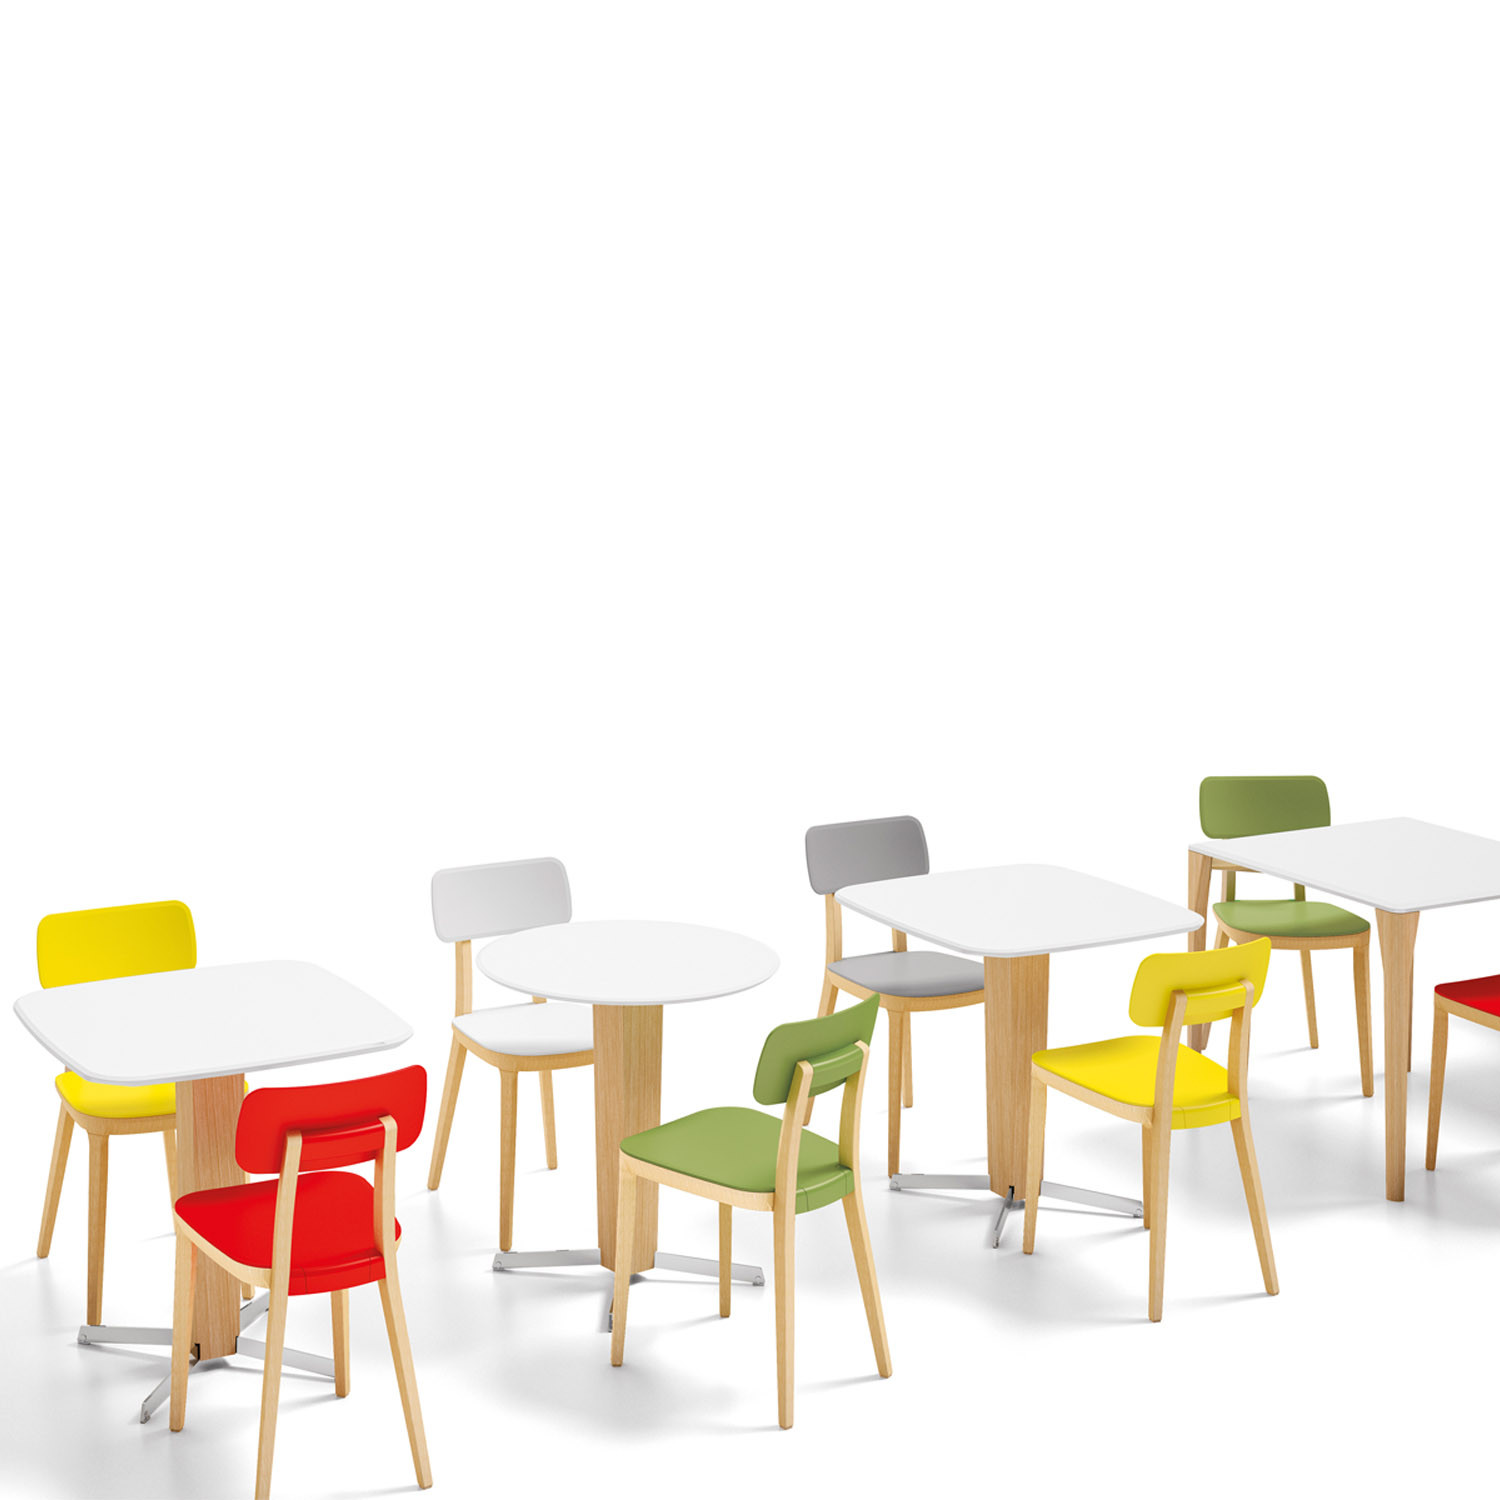 Retro Breakout Chairs and Tables